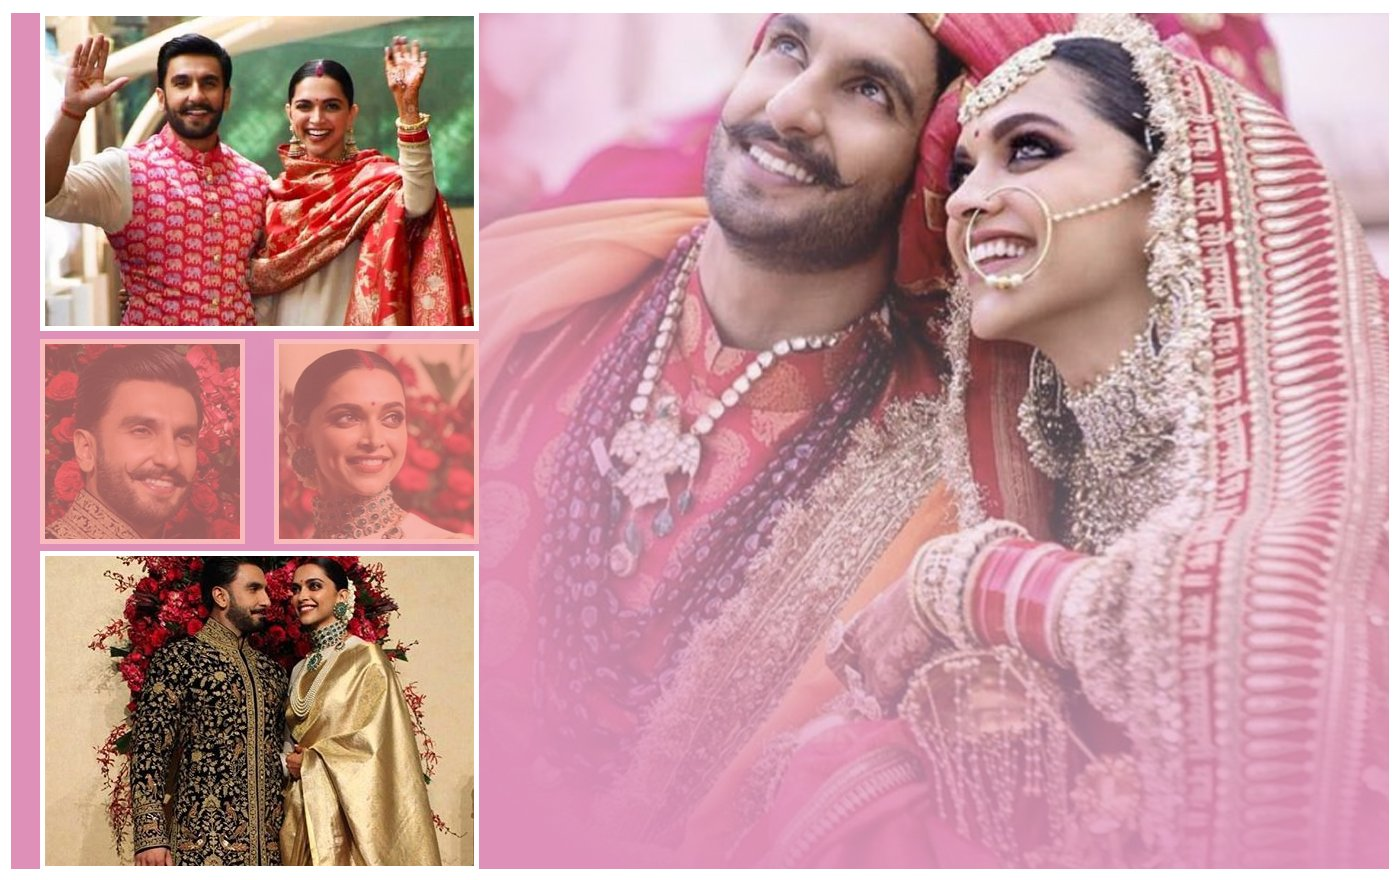 Fashion and Style Take Aways from the DeepVeer Wedding